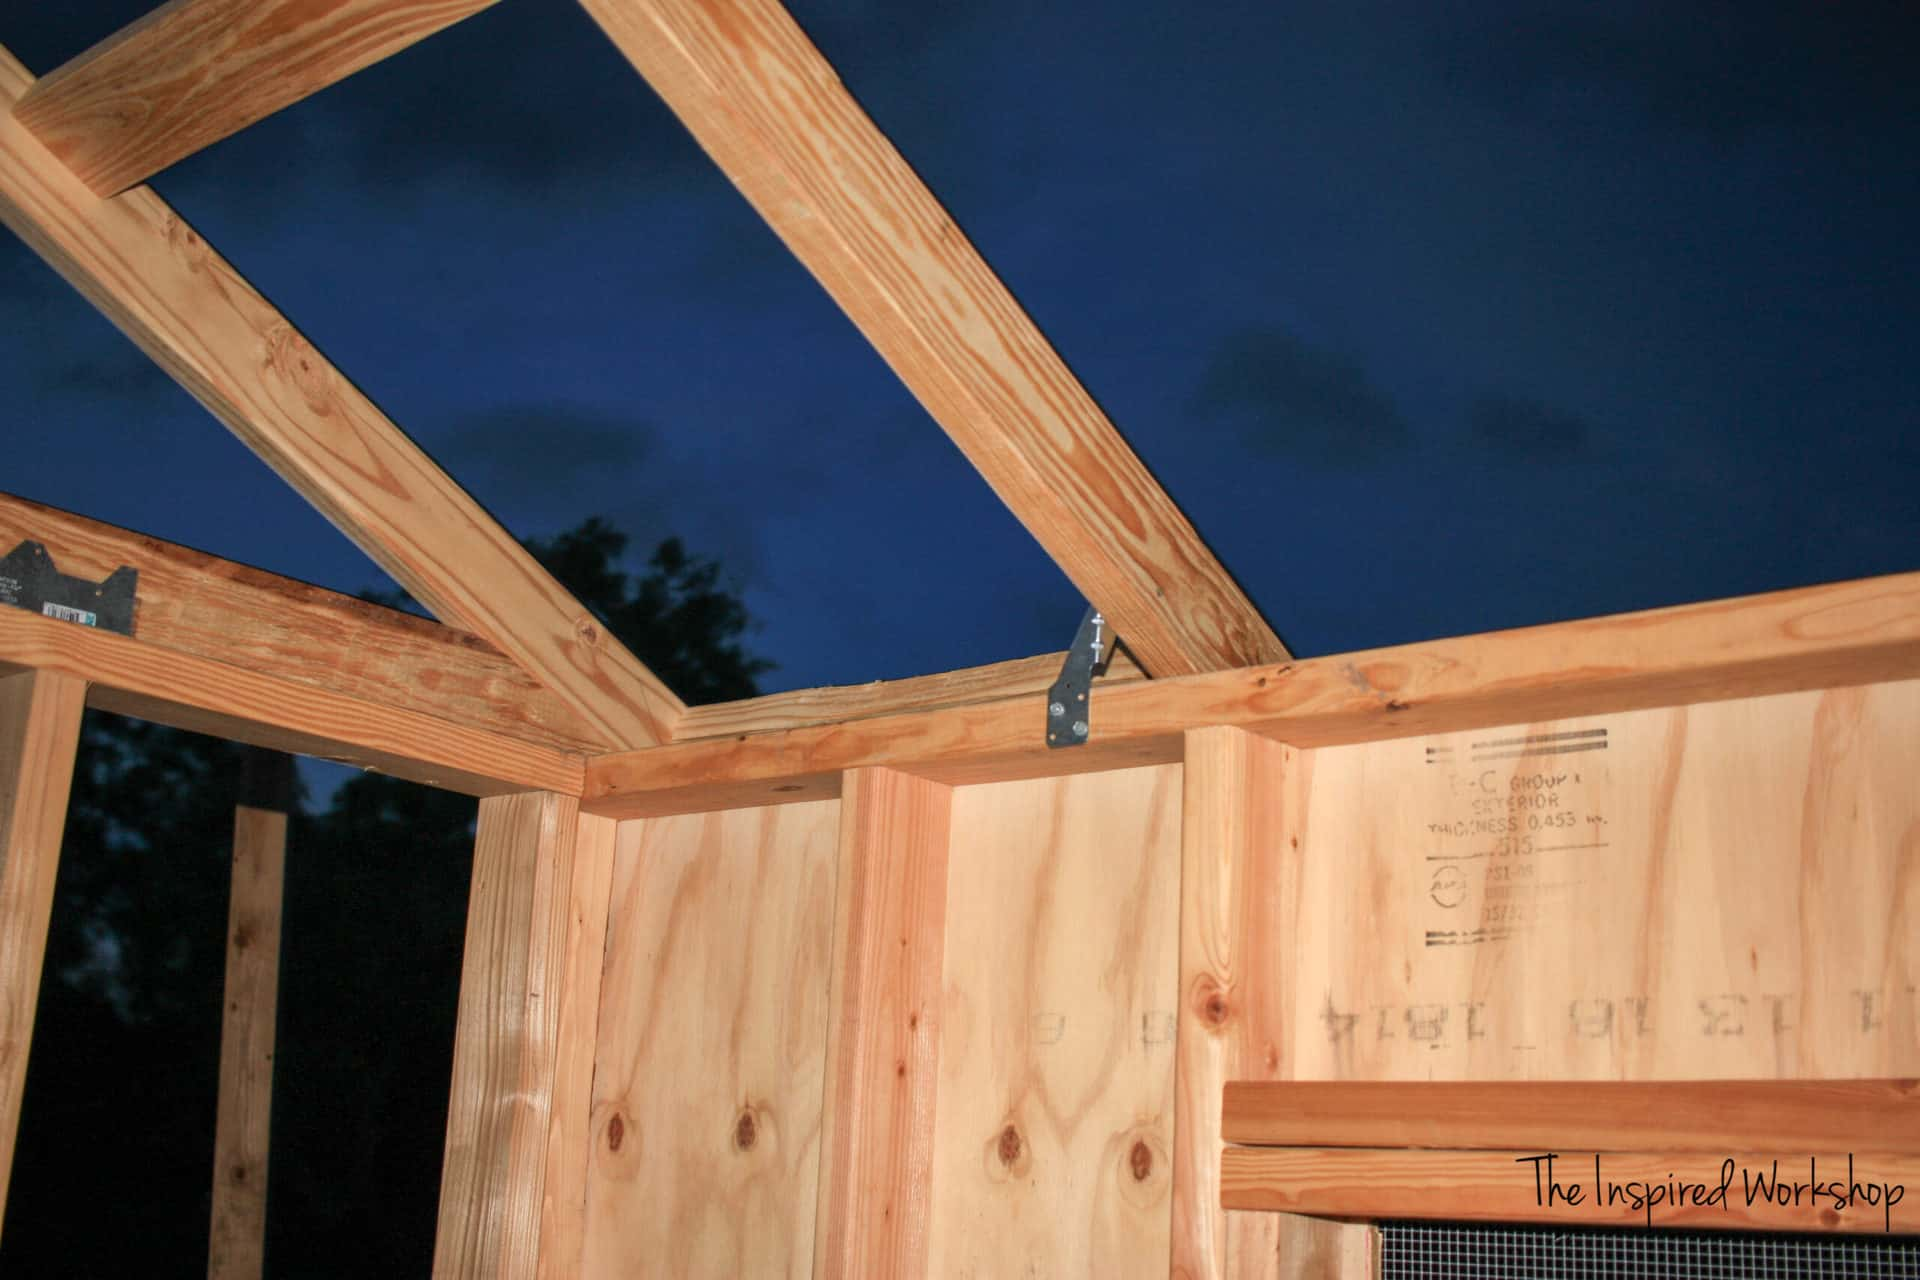 Building of the chicken coop, attaching the roof rafters